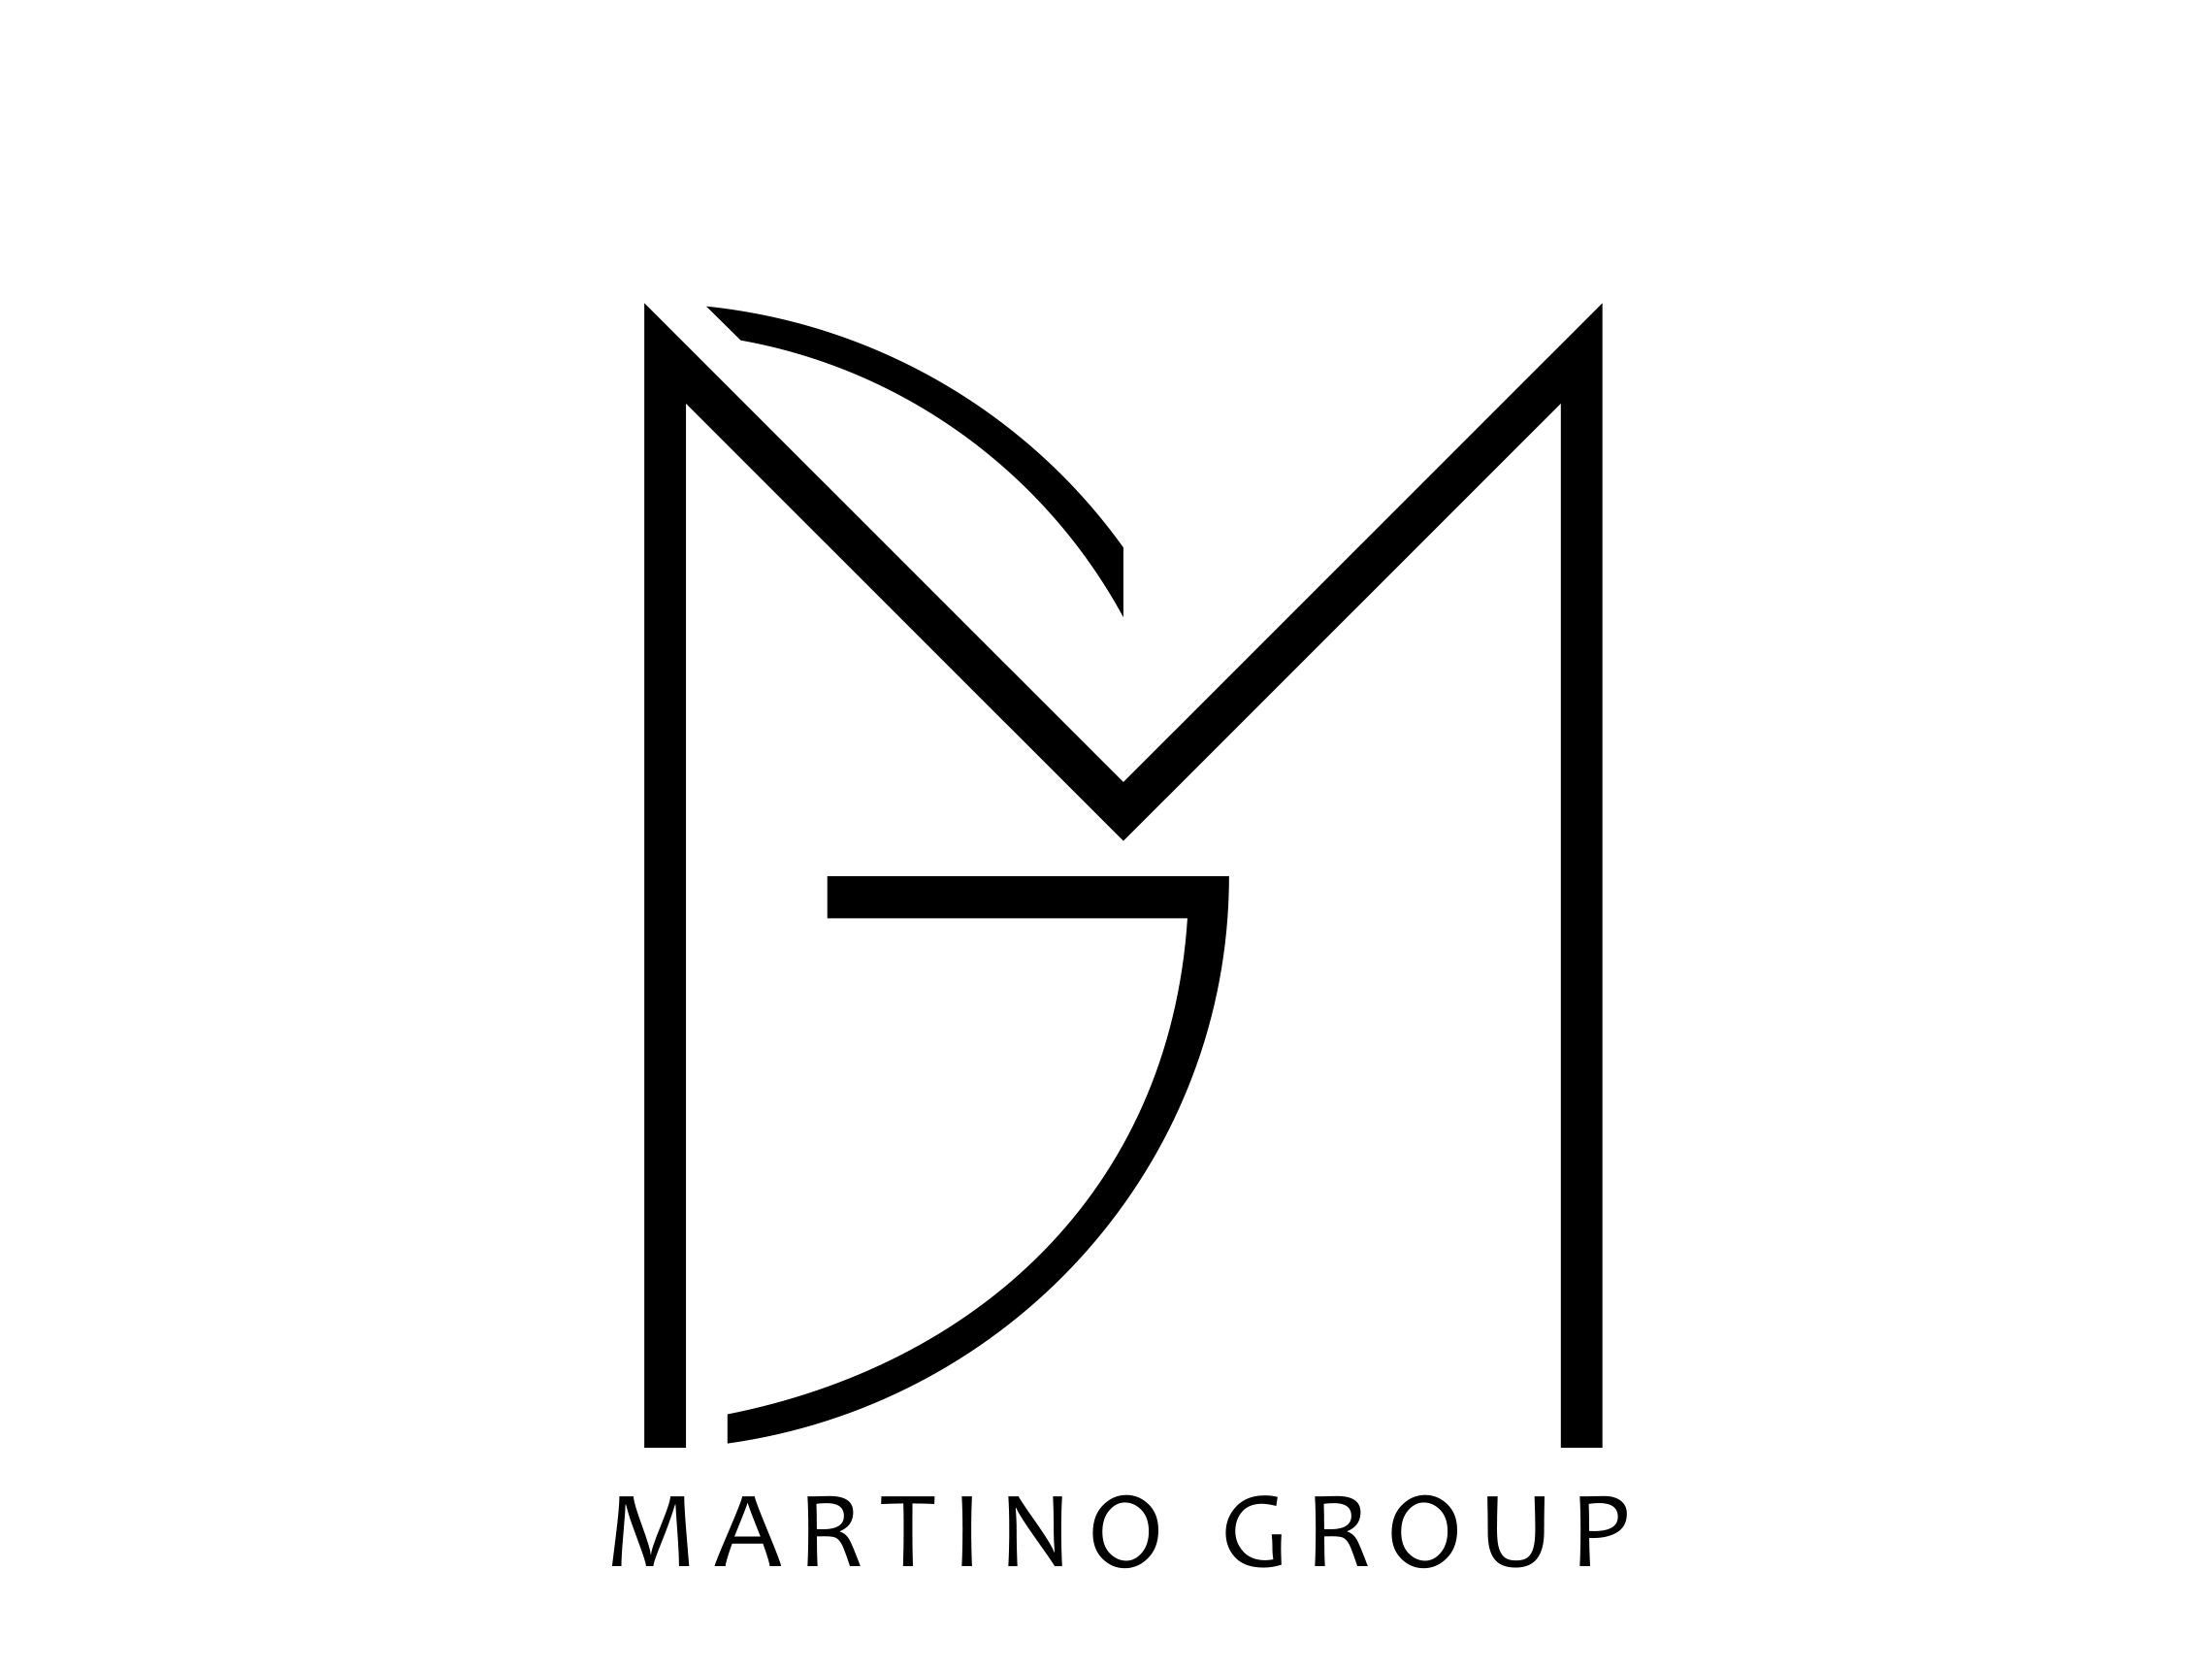 Home Martino Group